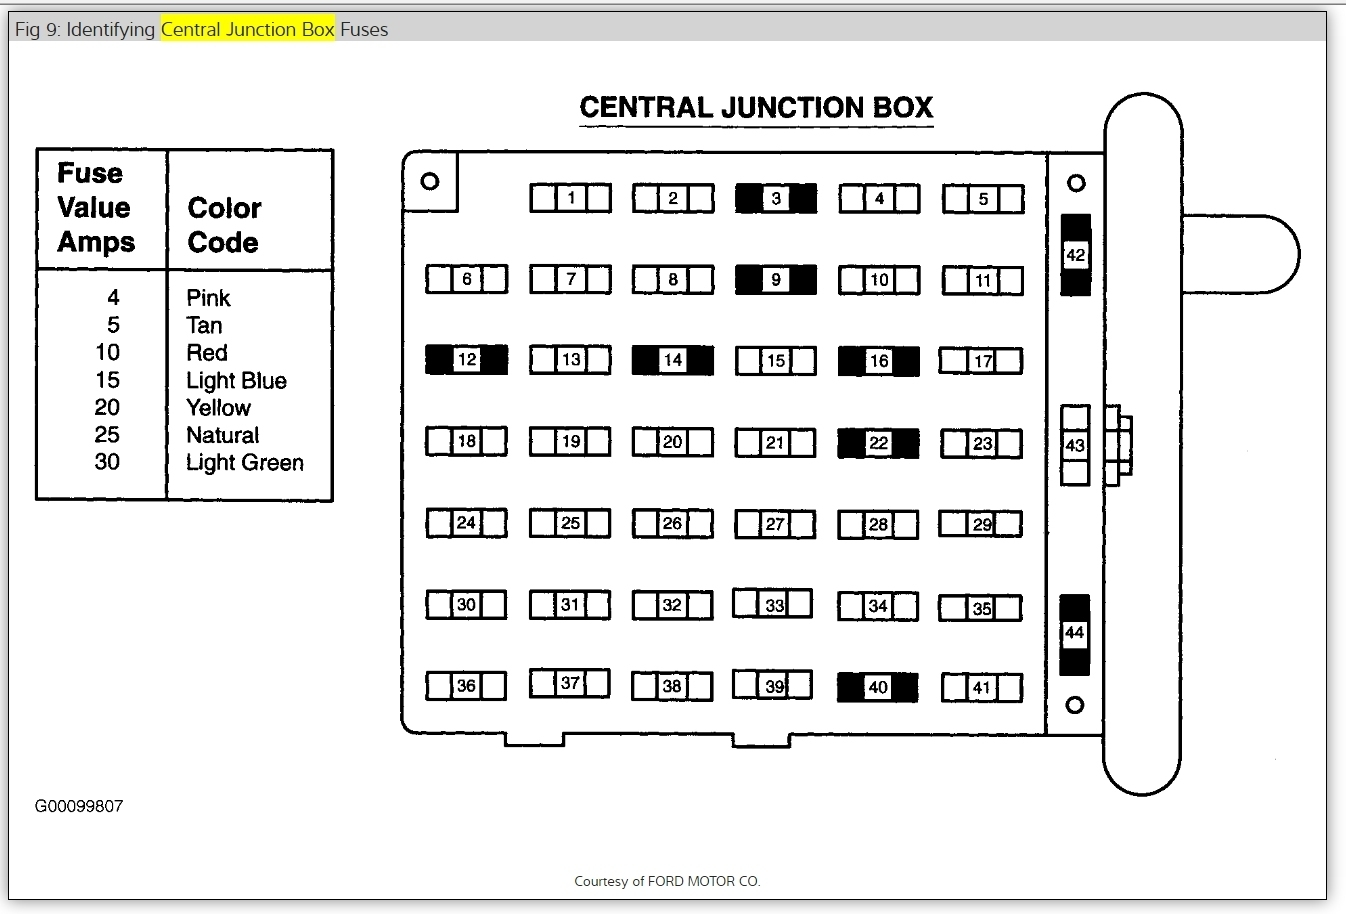 Fuse Box Diagram For 2012 Ford Mustang Archive Of Automotive Wiring 1998 Diagrams Rh Cad Fds Co Uk